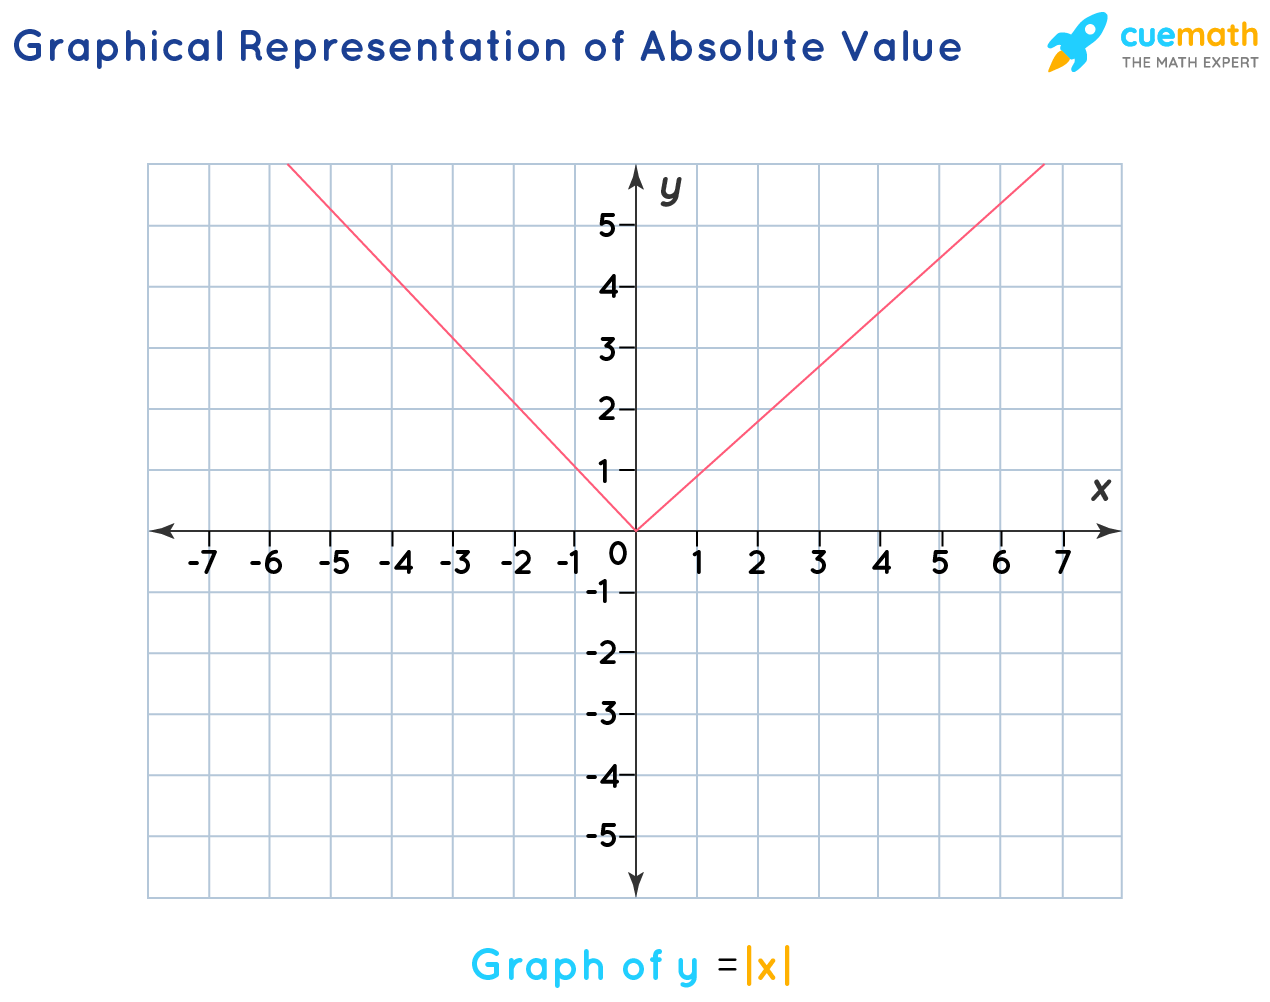 Graphical Representation of Absolute Value